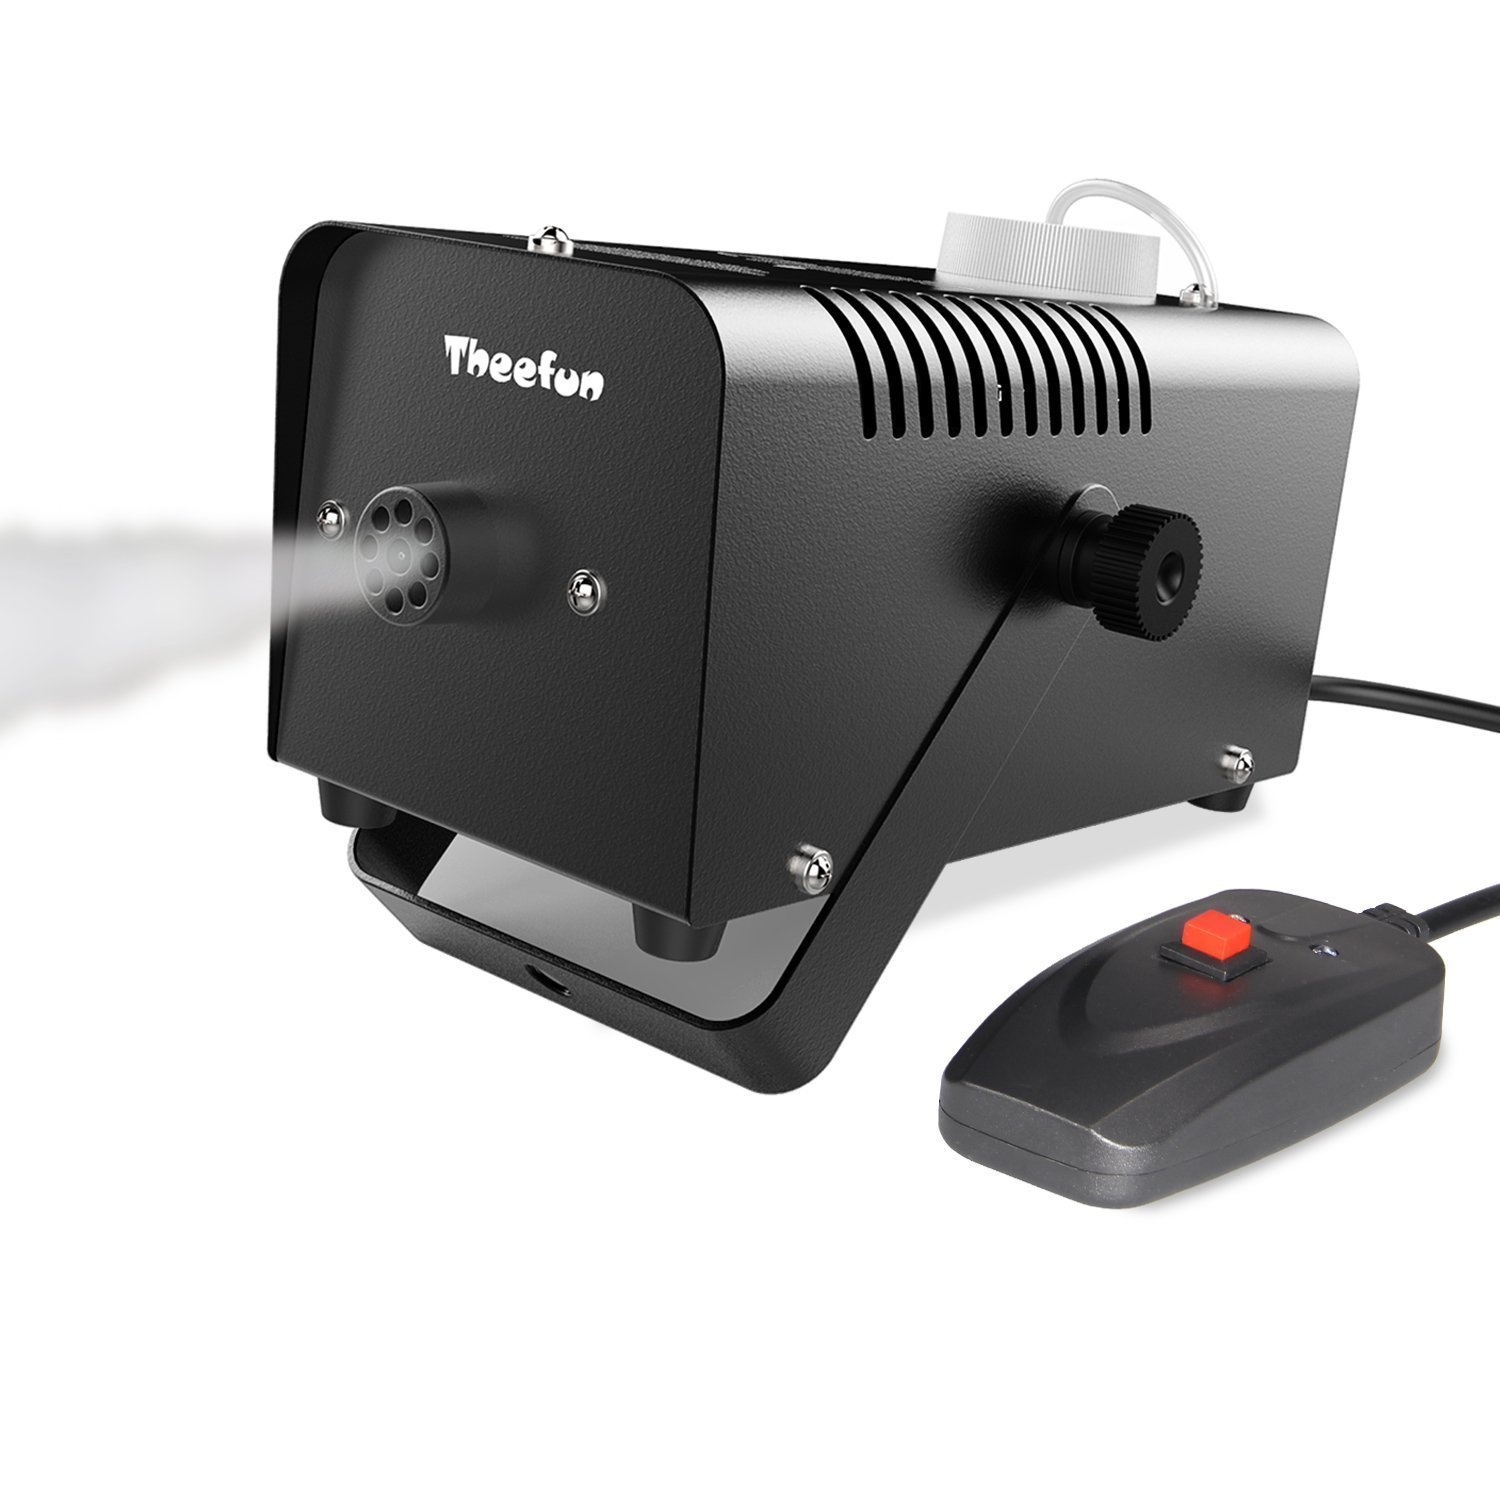 Theefun 400-Watt Portable Halloween and Party Fog Machine with Wired Remote Control for Holidays, Weddings - impressive output